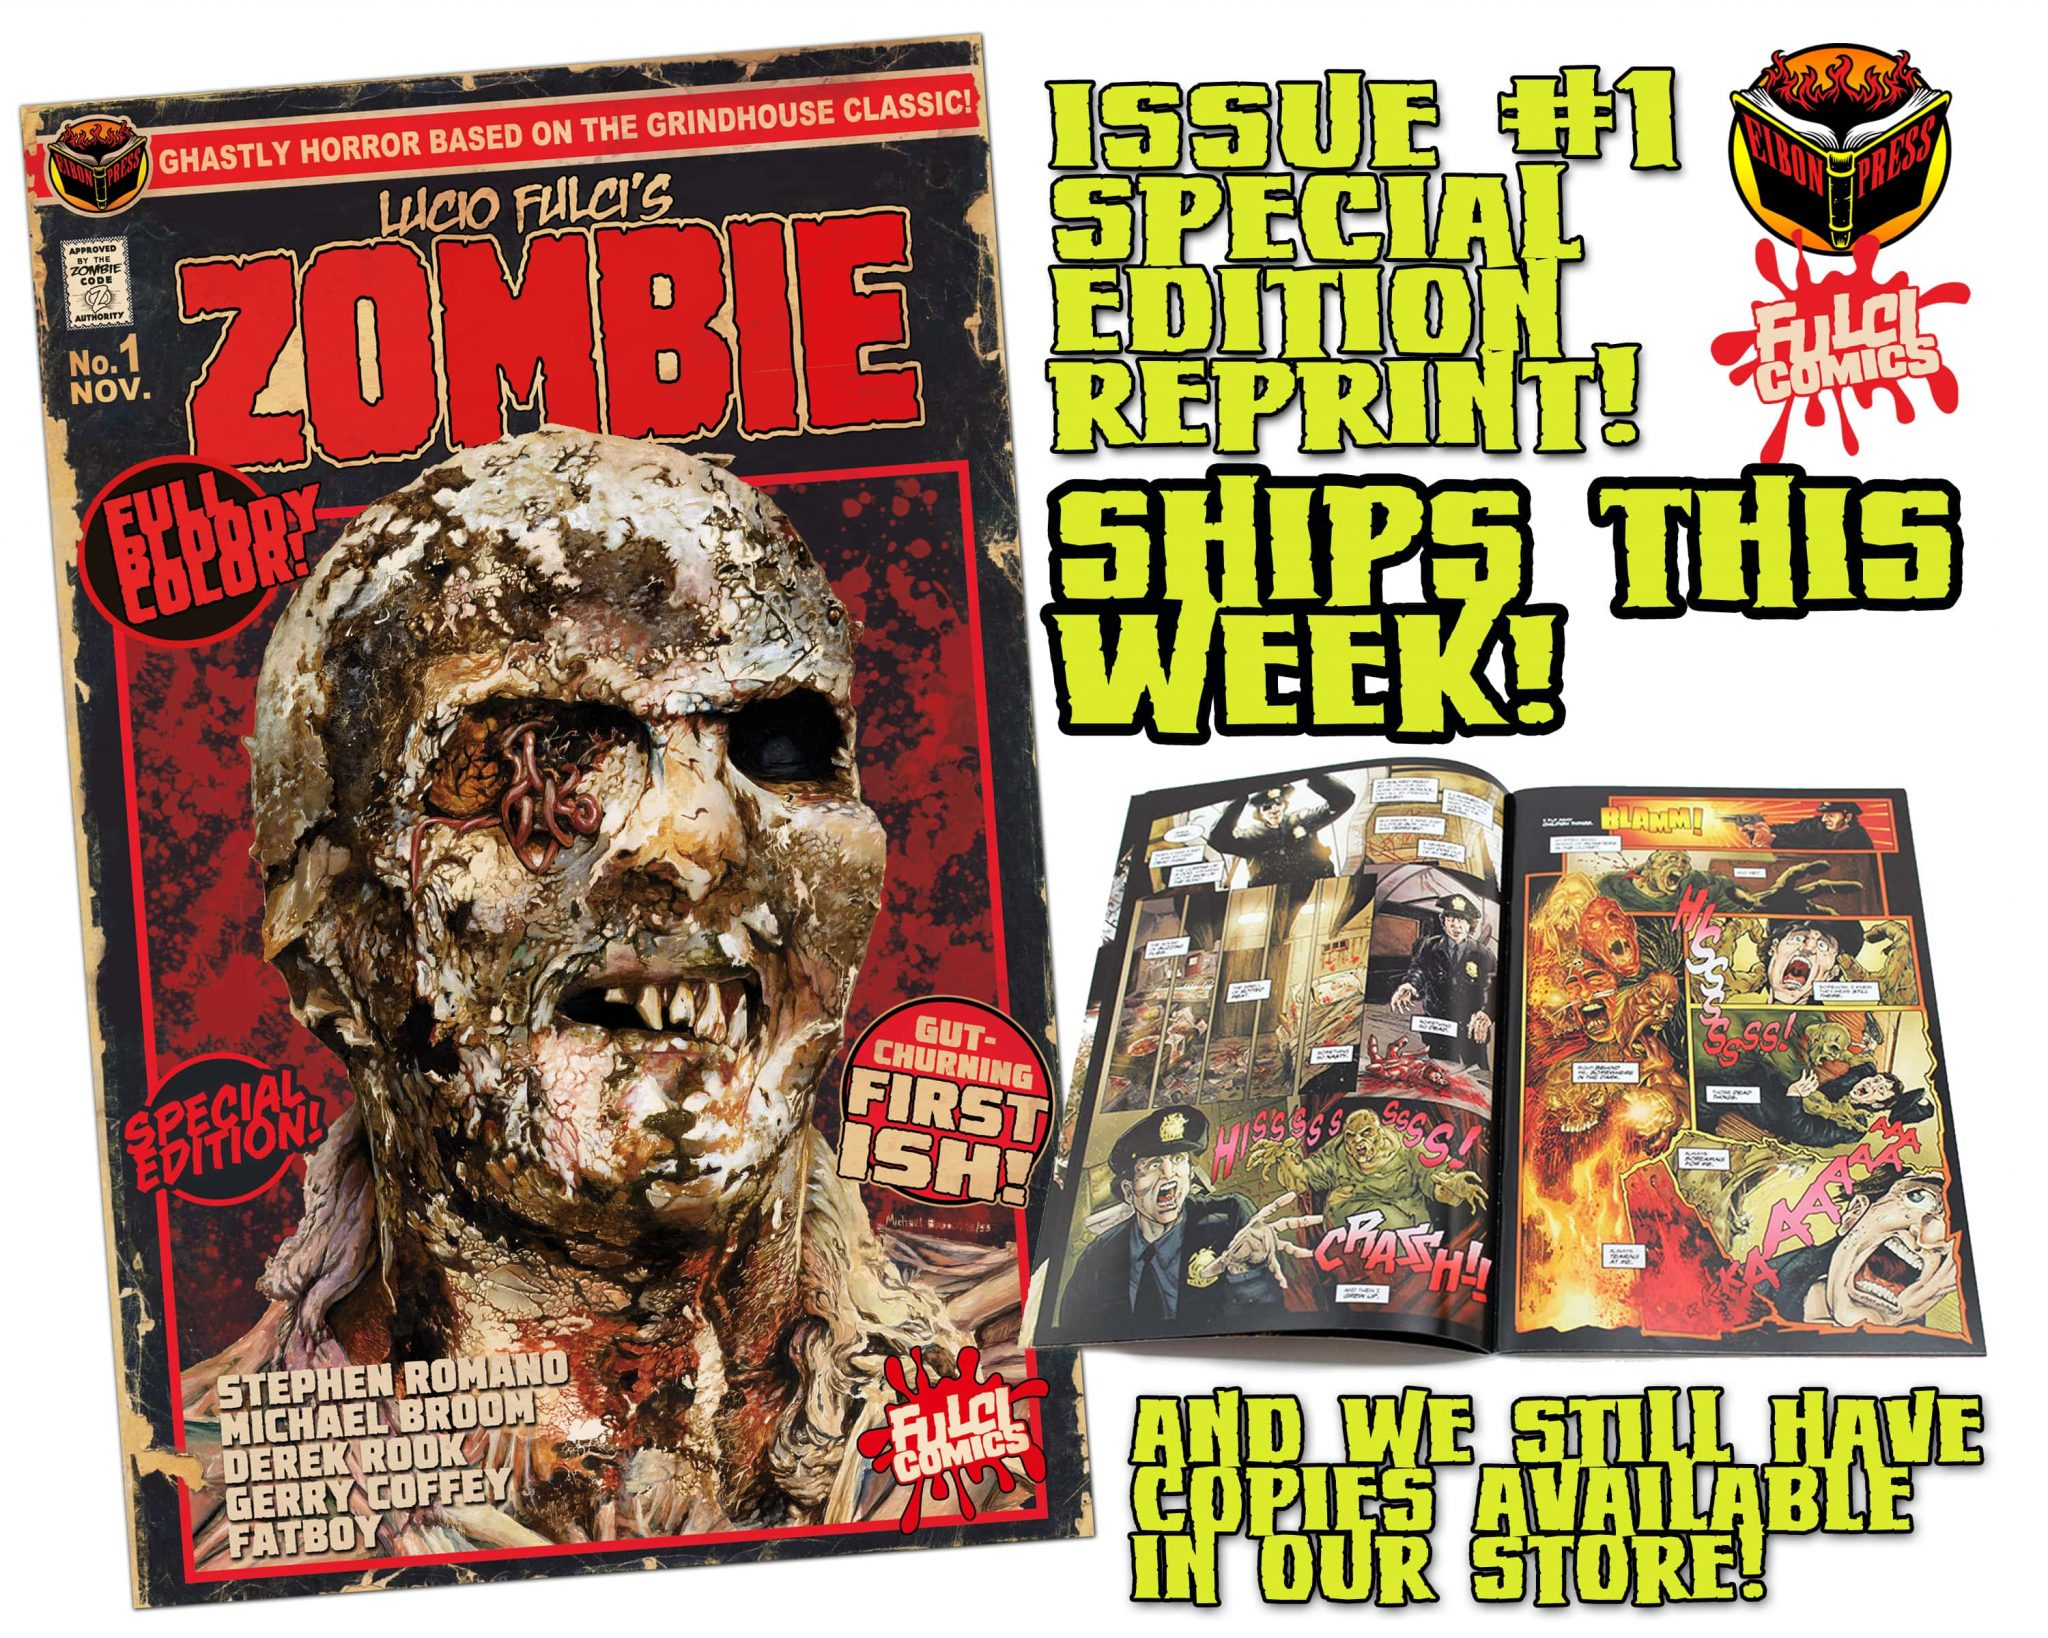 ZOMBIE 1 SPEC ED SHIP THIS WEEK min - Lucio Fulci's ZOMBIE #1 Special Edition Comic Ships this Week and MORE!